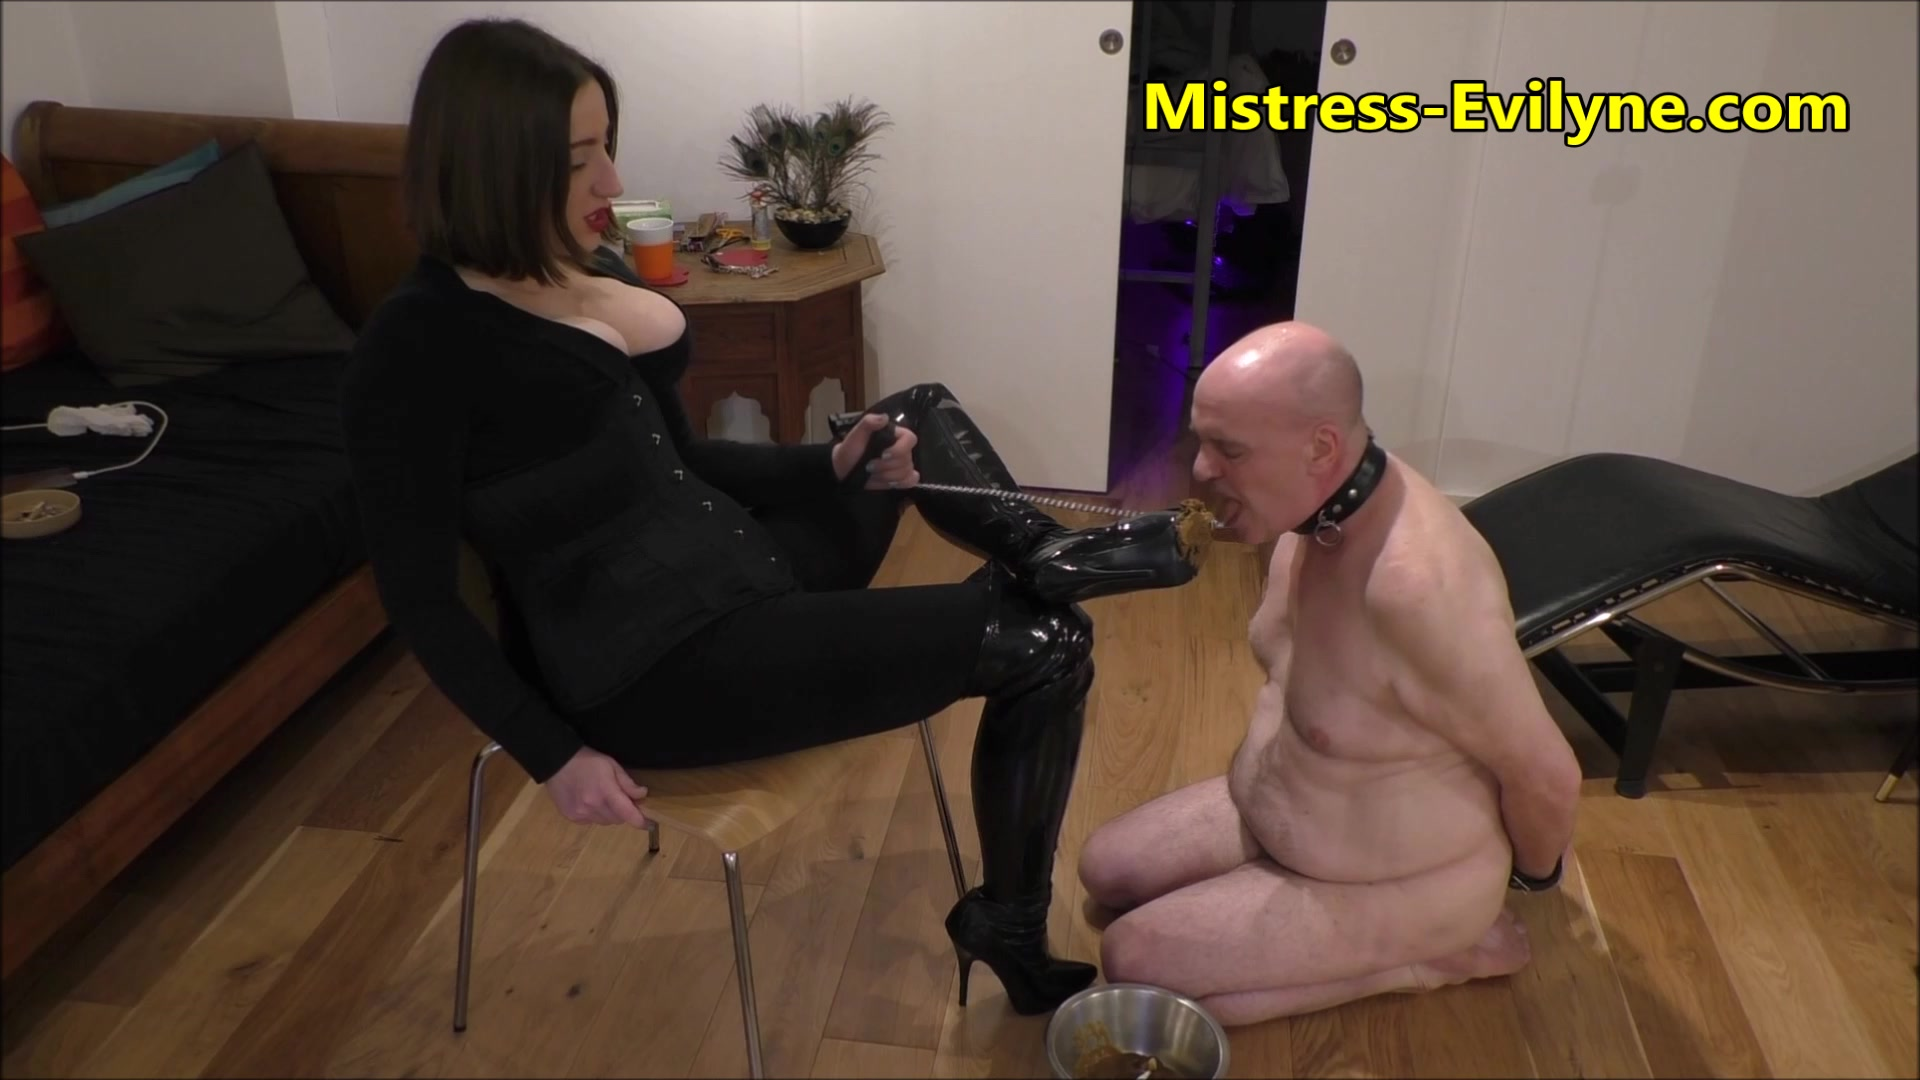 Mistress_Evilyne_-_Dirty_Scat_eating_pig.00001.jpg